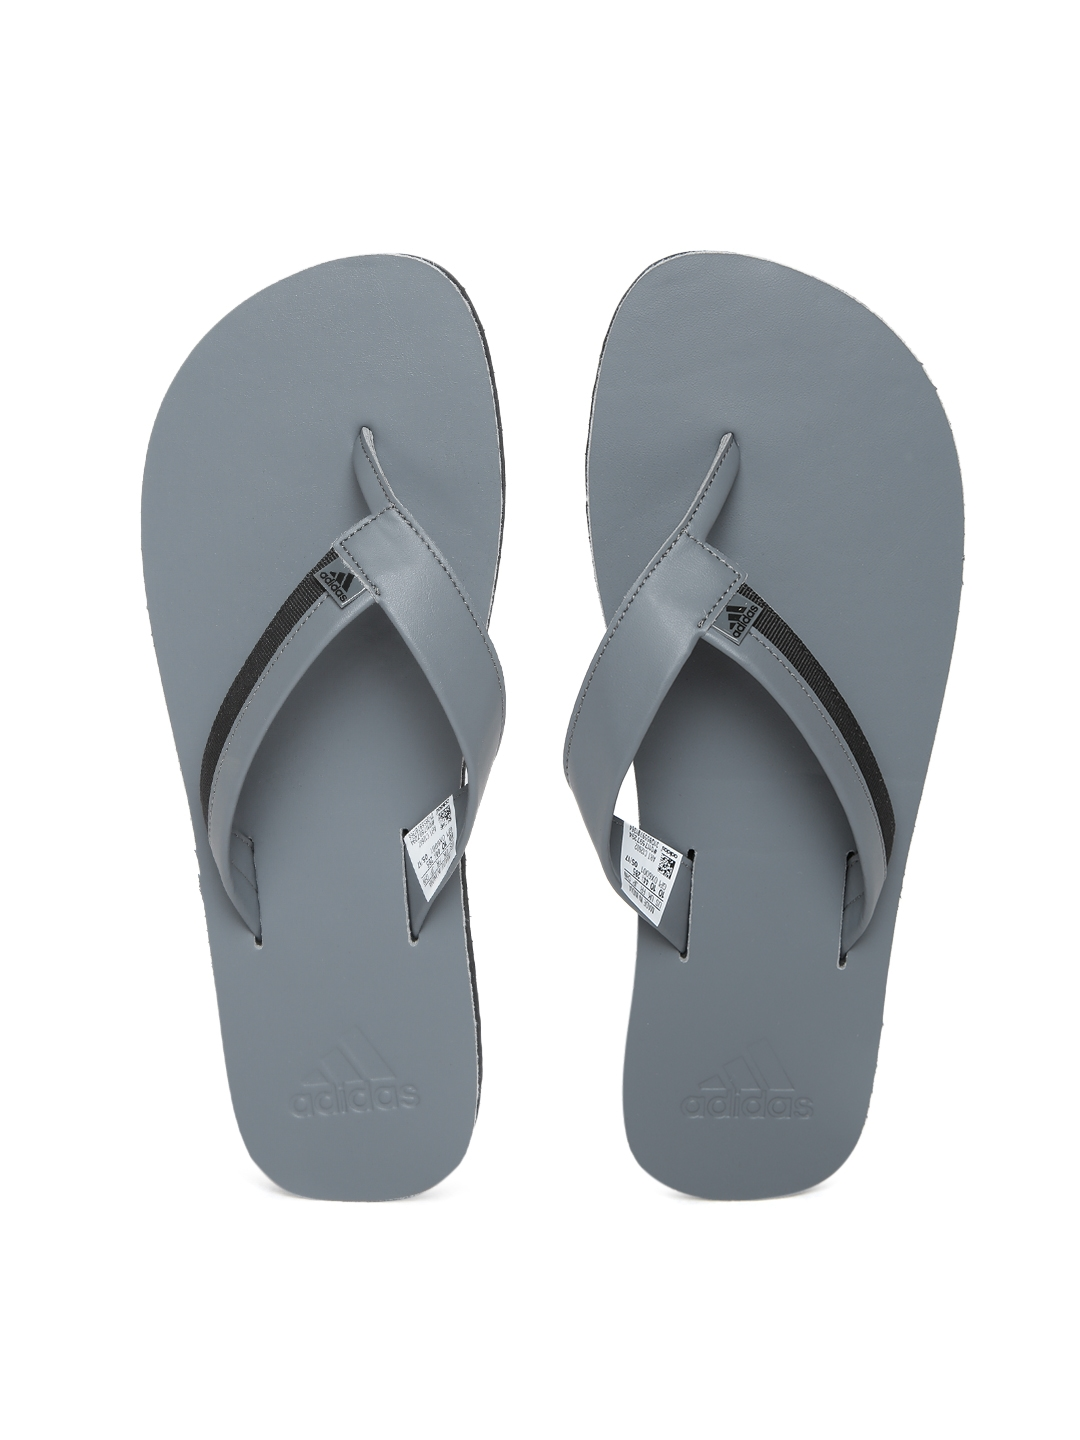 6e4fb64890de65 Buy ADIDAS Men Grey   Black Brizo 3.0 Flip Flops - Flip Flops for ...